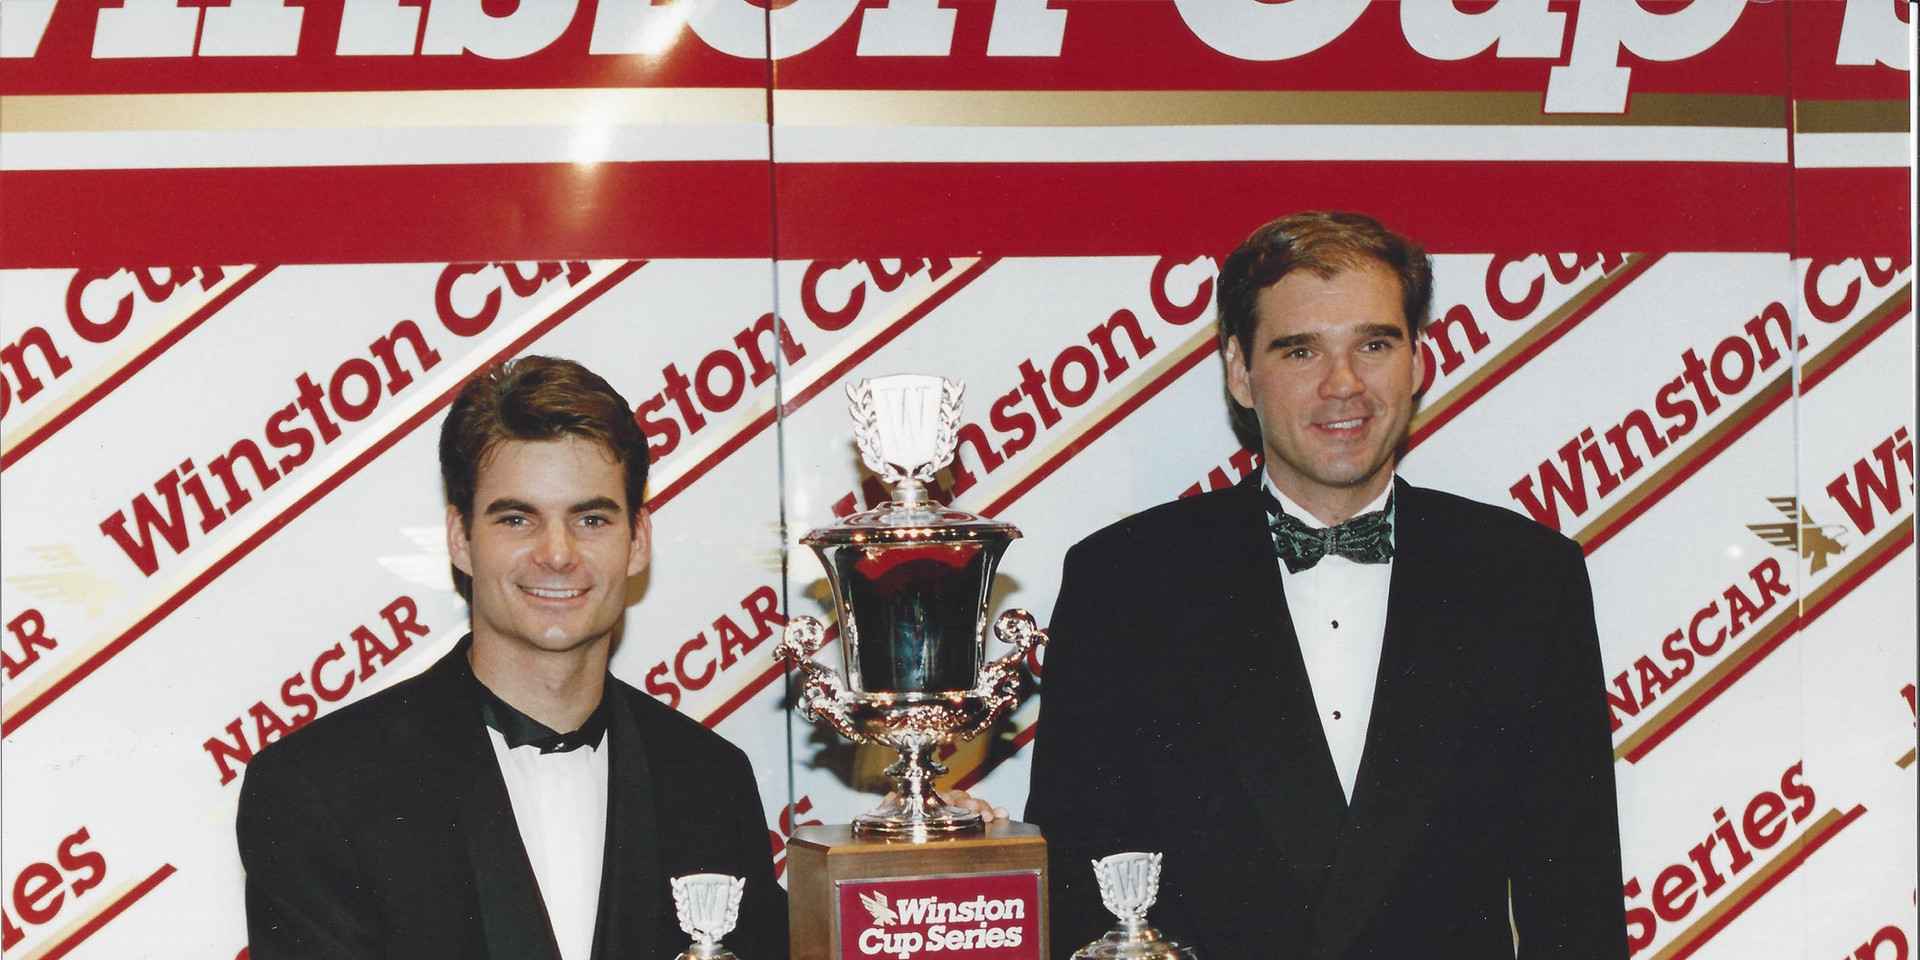 Ray and Jeff - Banquet 1995 Champs.jpg